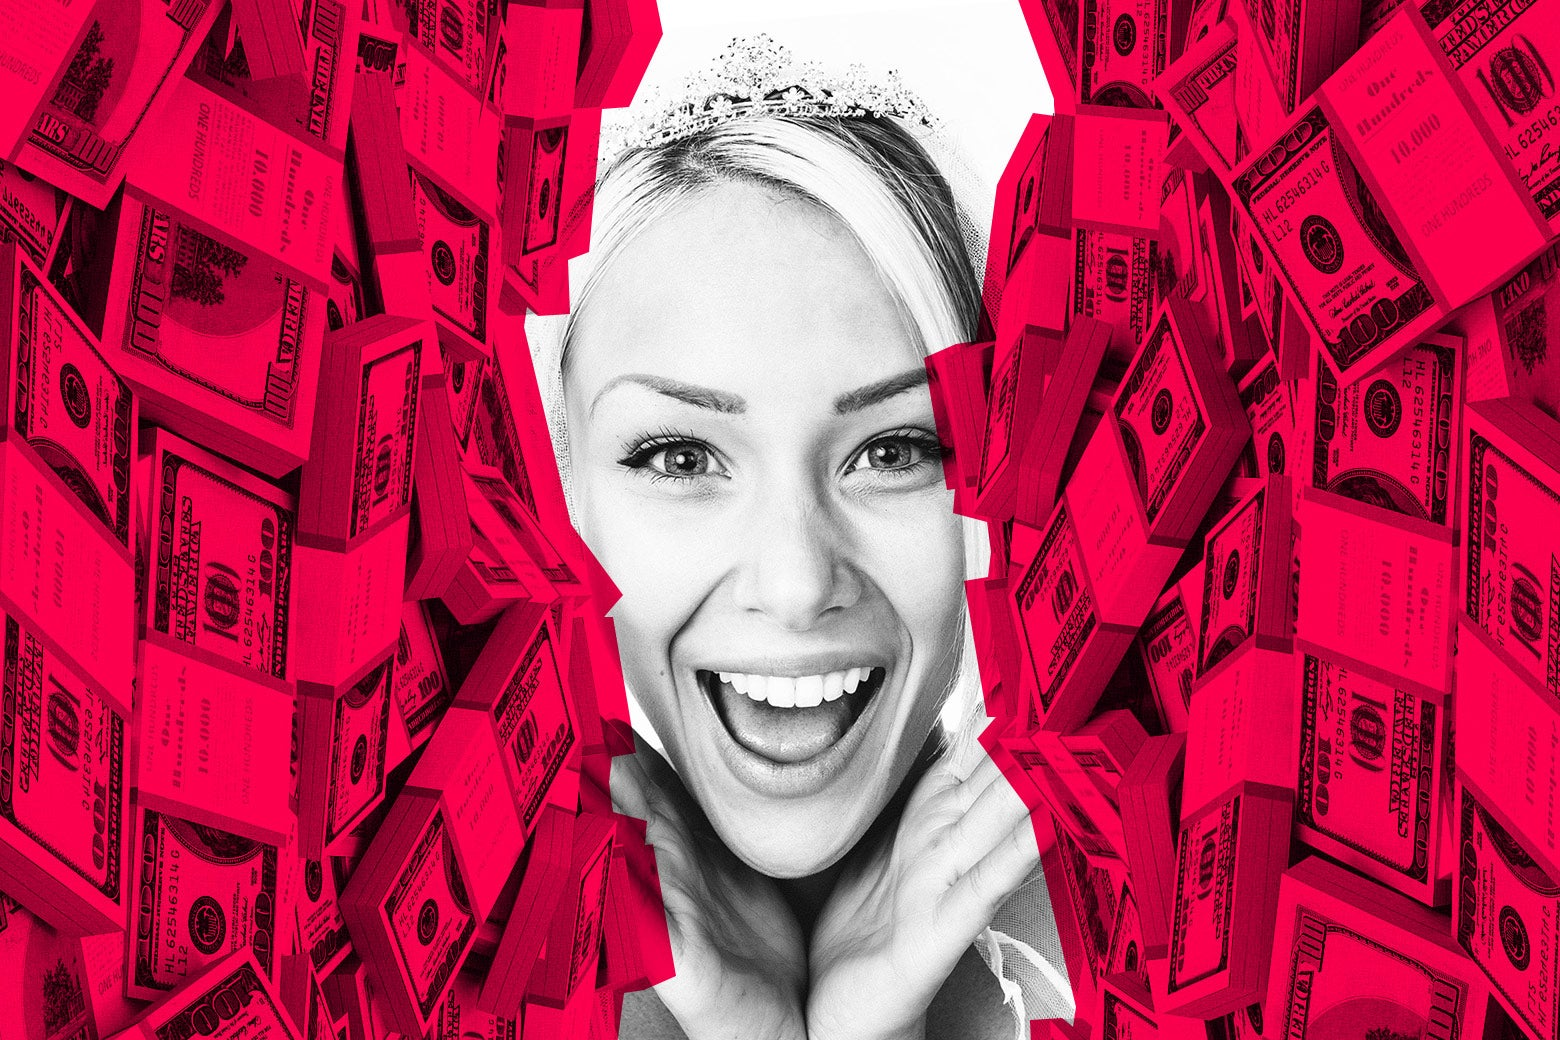 Woman looking happy set within a collage of dollar bills.